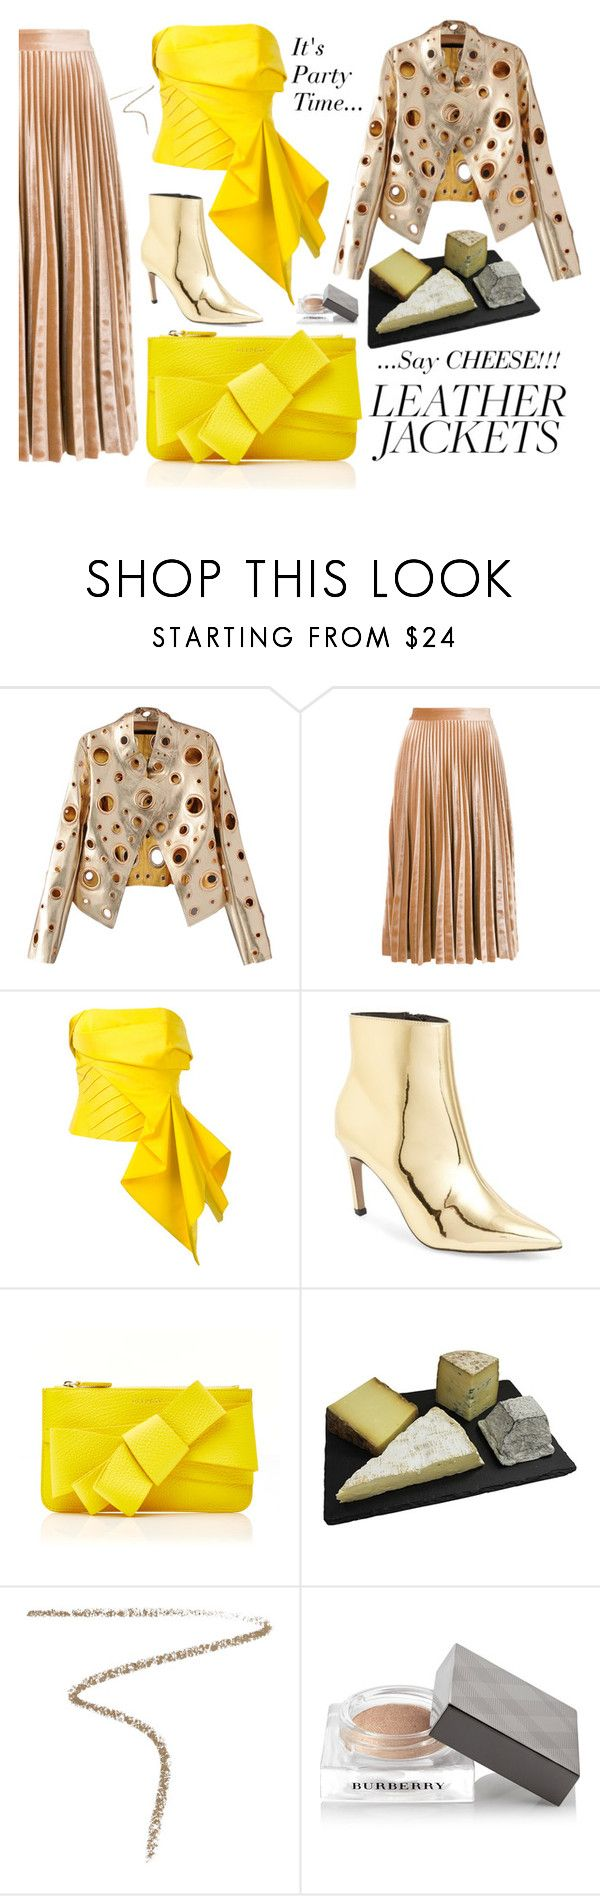 """Say CHEESE!!! Leather Jacket"" by victoria-styling ❤ liked on Polyvore featuring WithChic, MSGM, Rubin Singer, Topshop, Delpozo and Burberry"